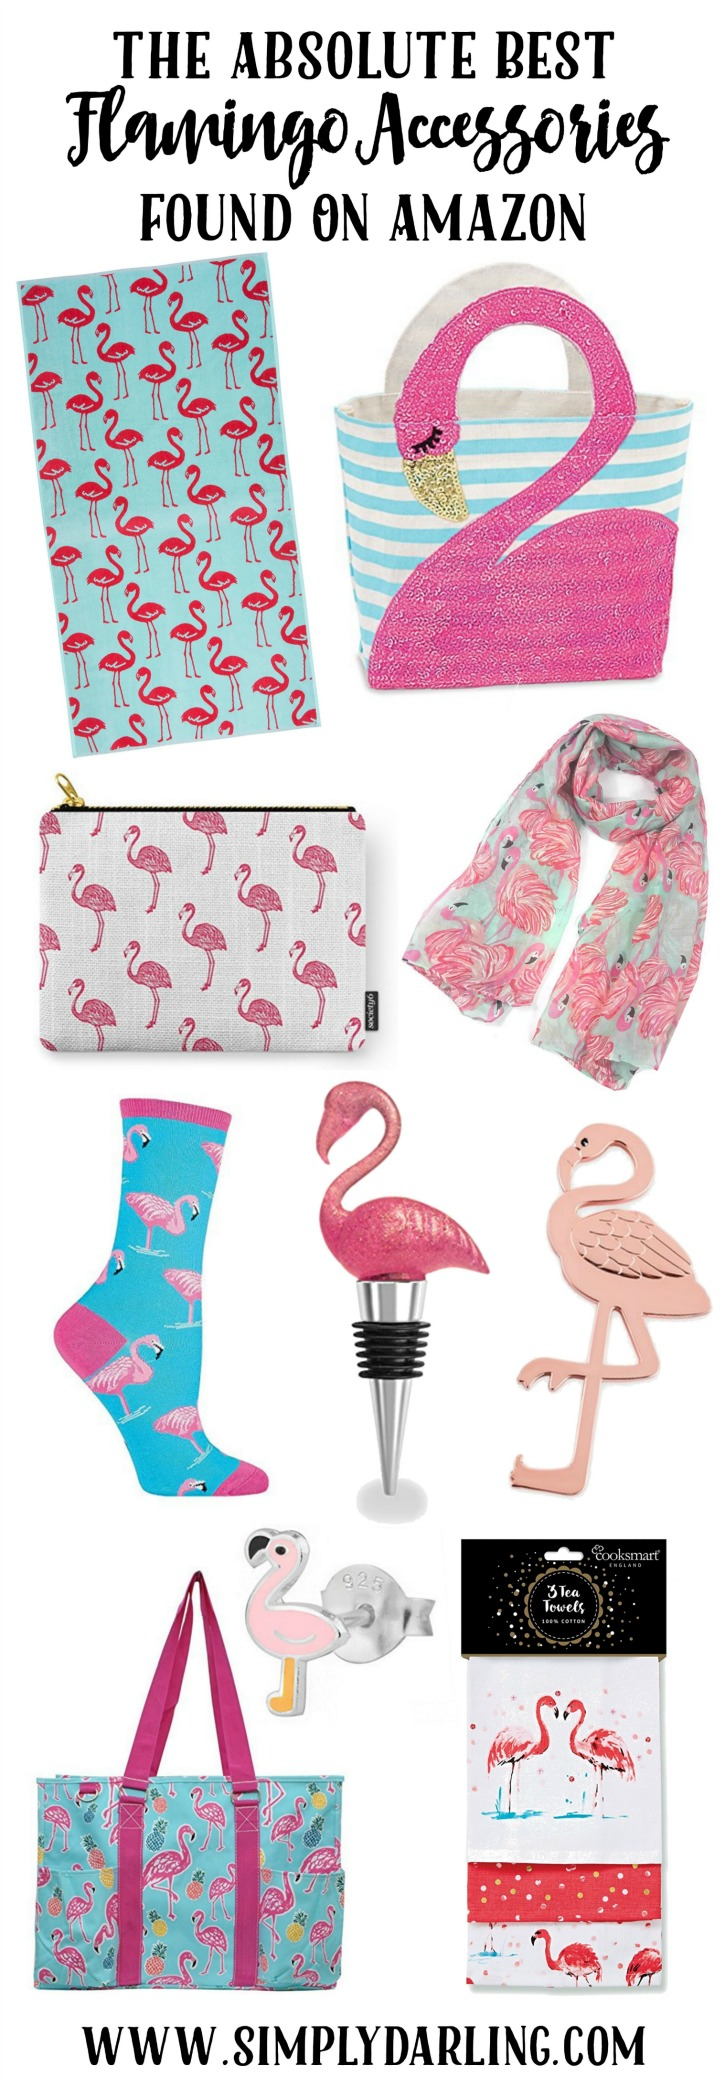 Absolute best flamingo accessories on amazon